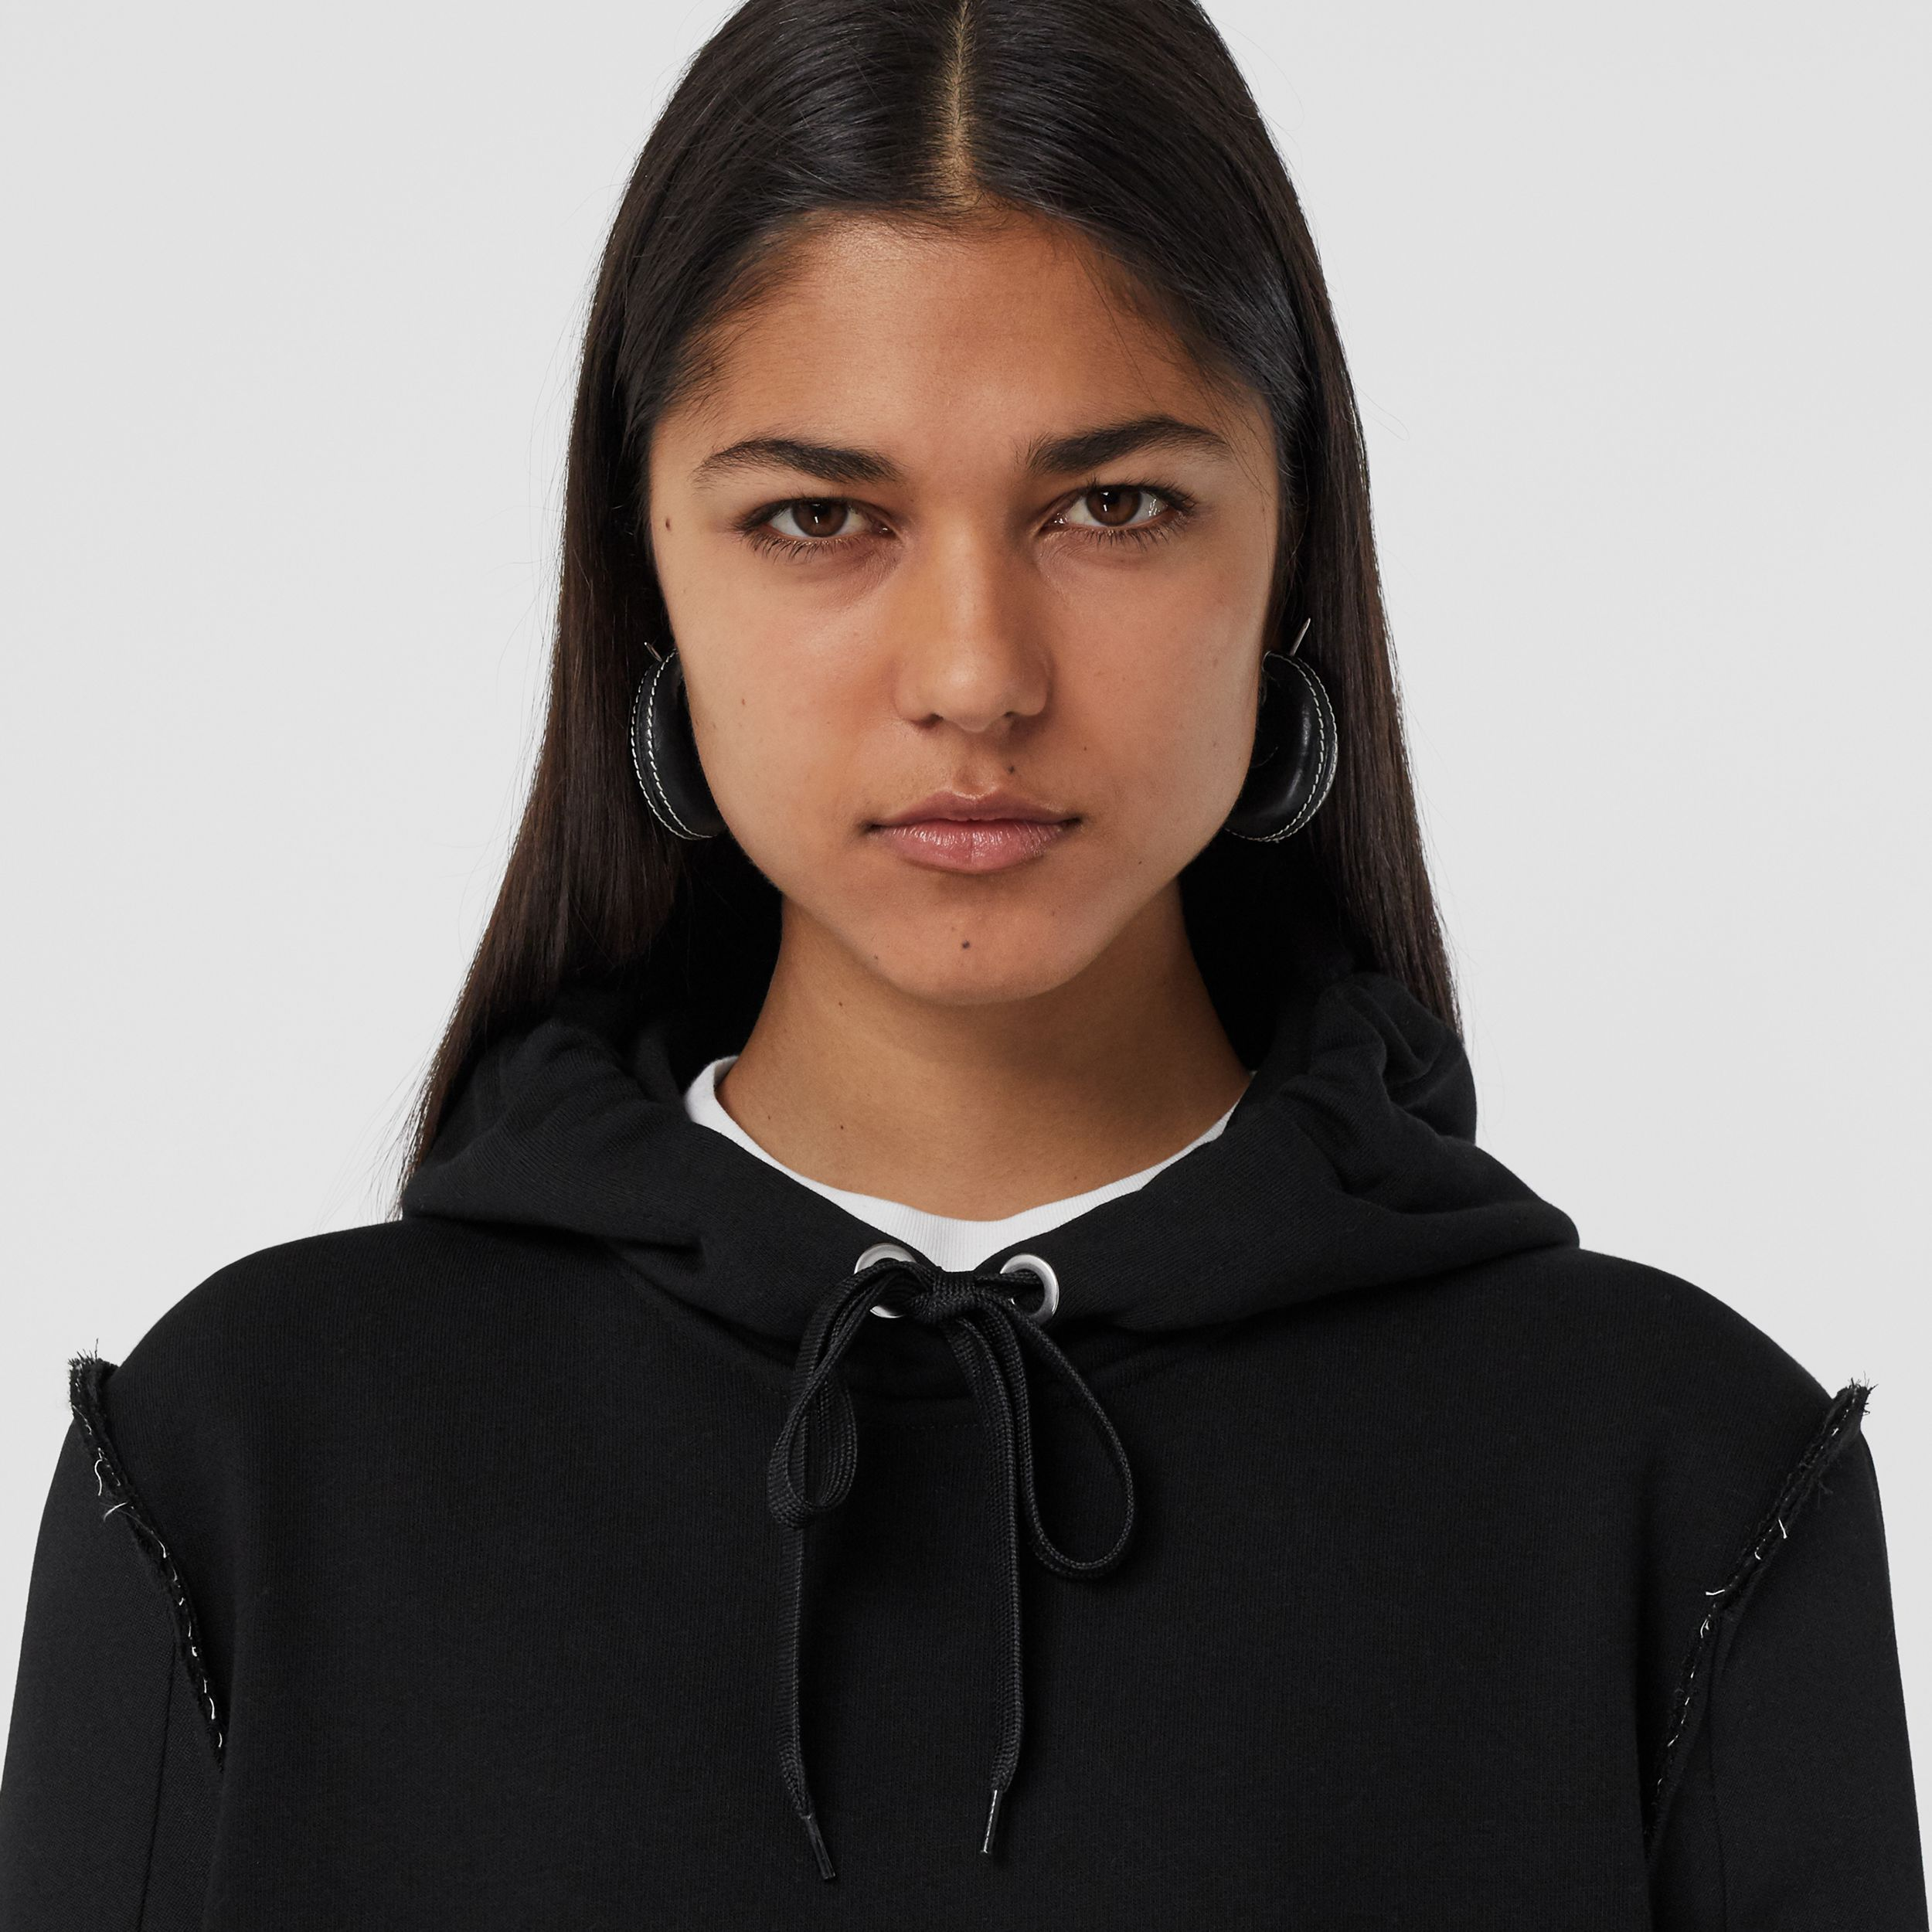 Cotton and Wool Reconstructed Oversized Hoodie in Black - Women | Burberry - 2